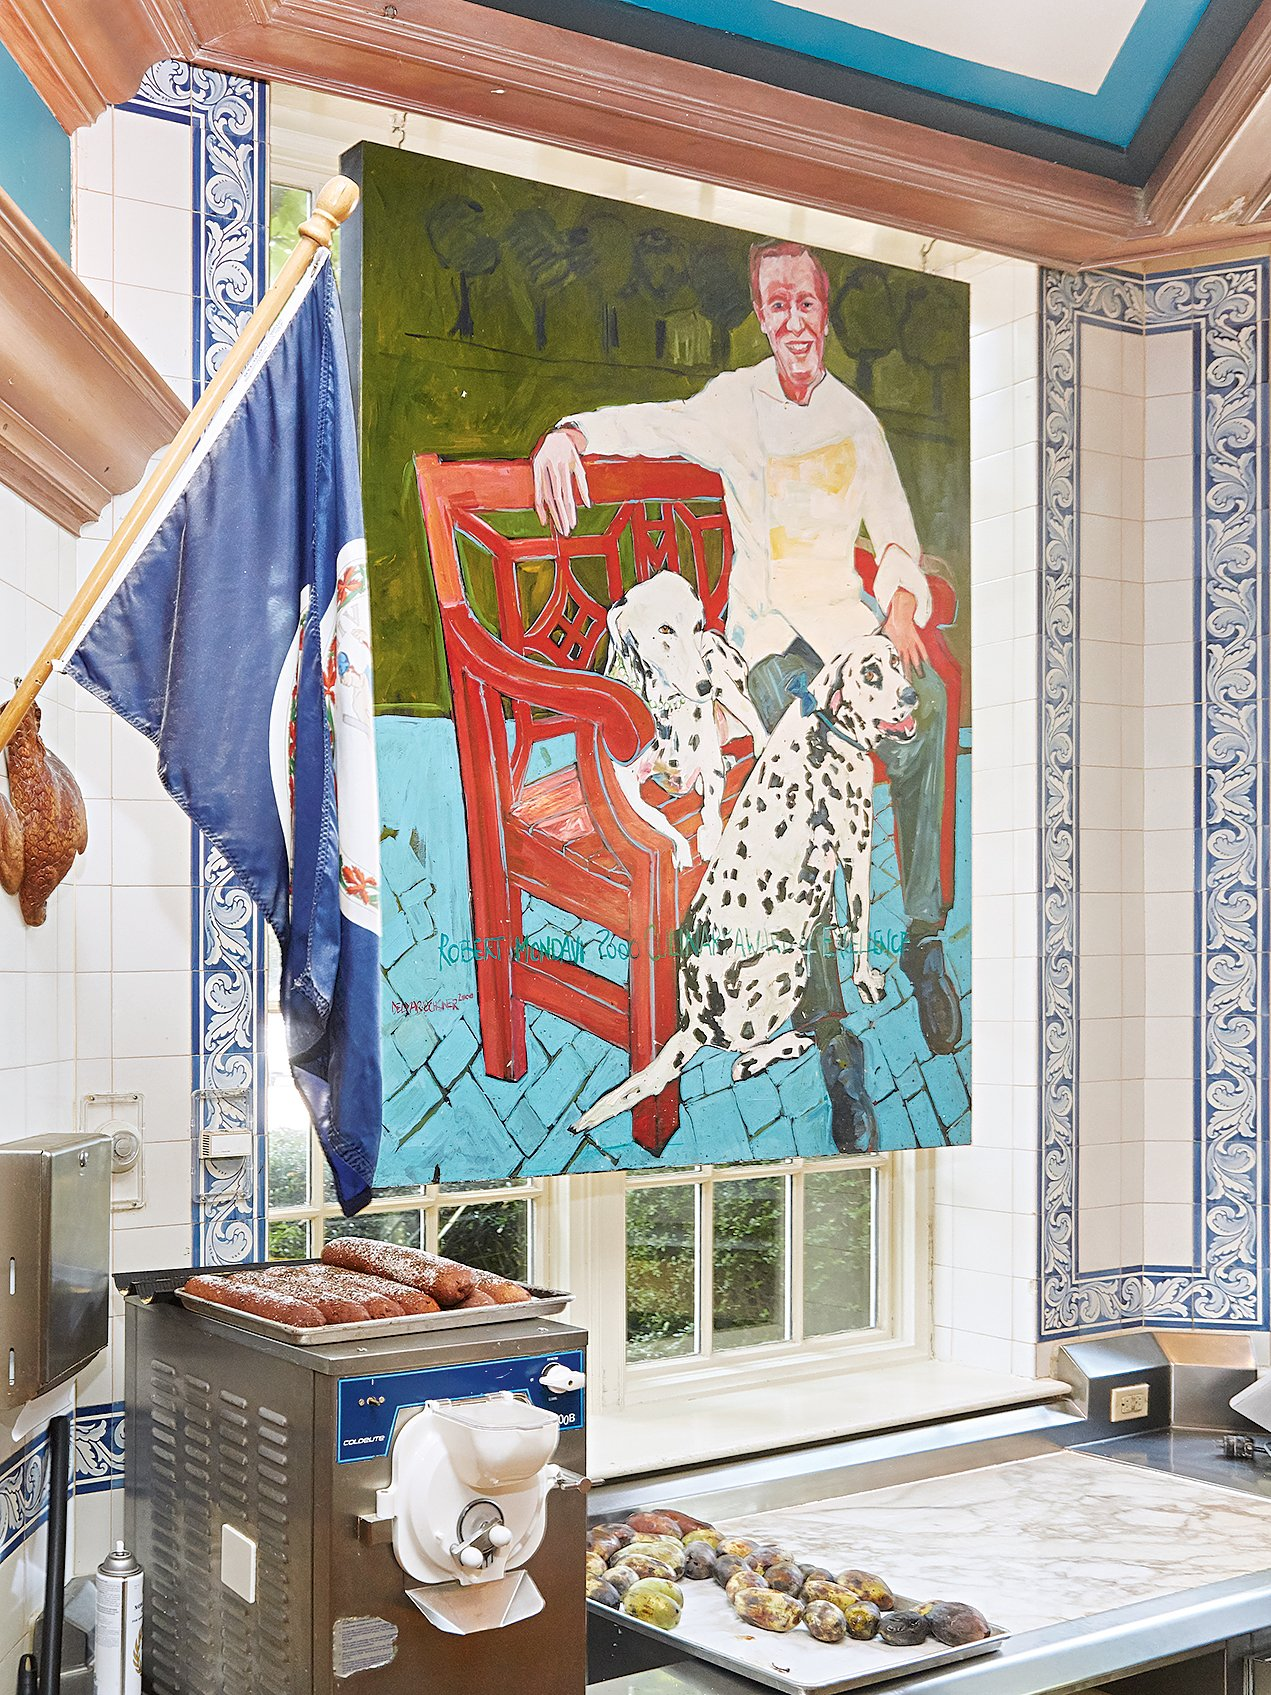 A painting of O'Connell and the inn's original dalmatians hangs in the kitchen.